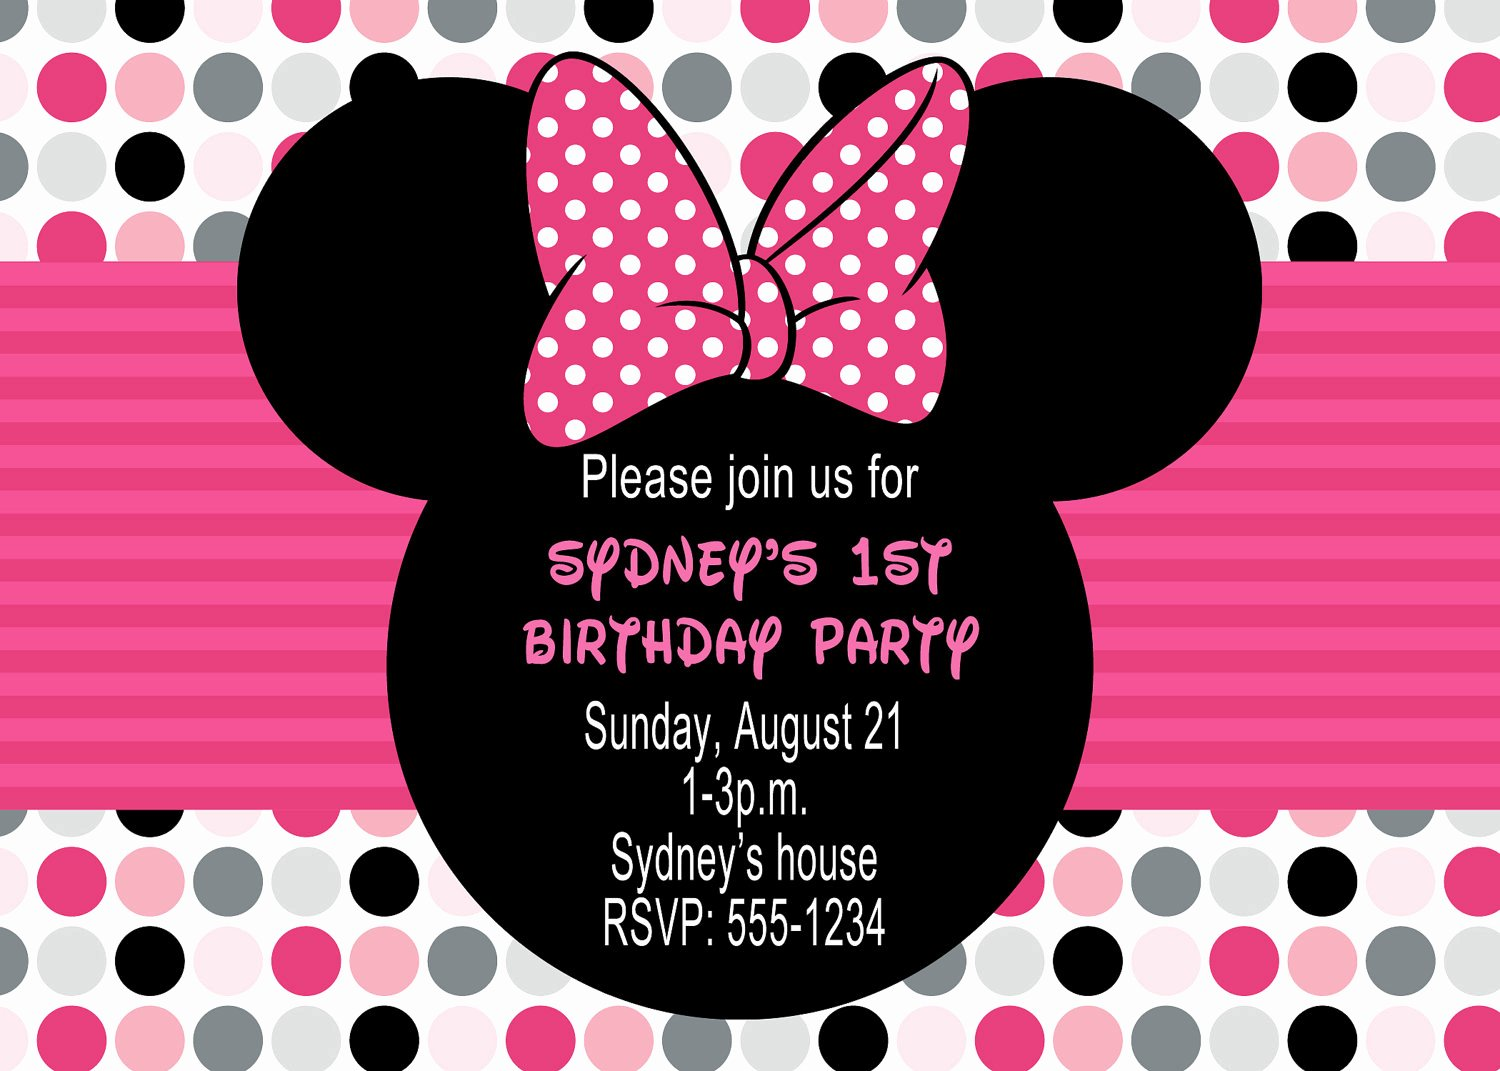 Minnie Mouse Invitation Card Lovely Minnie Mouse Birthday Party Invitations